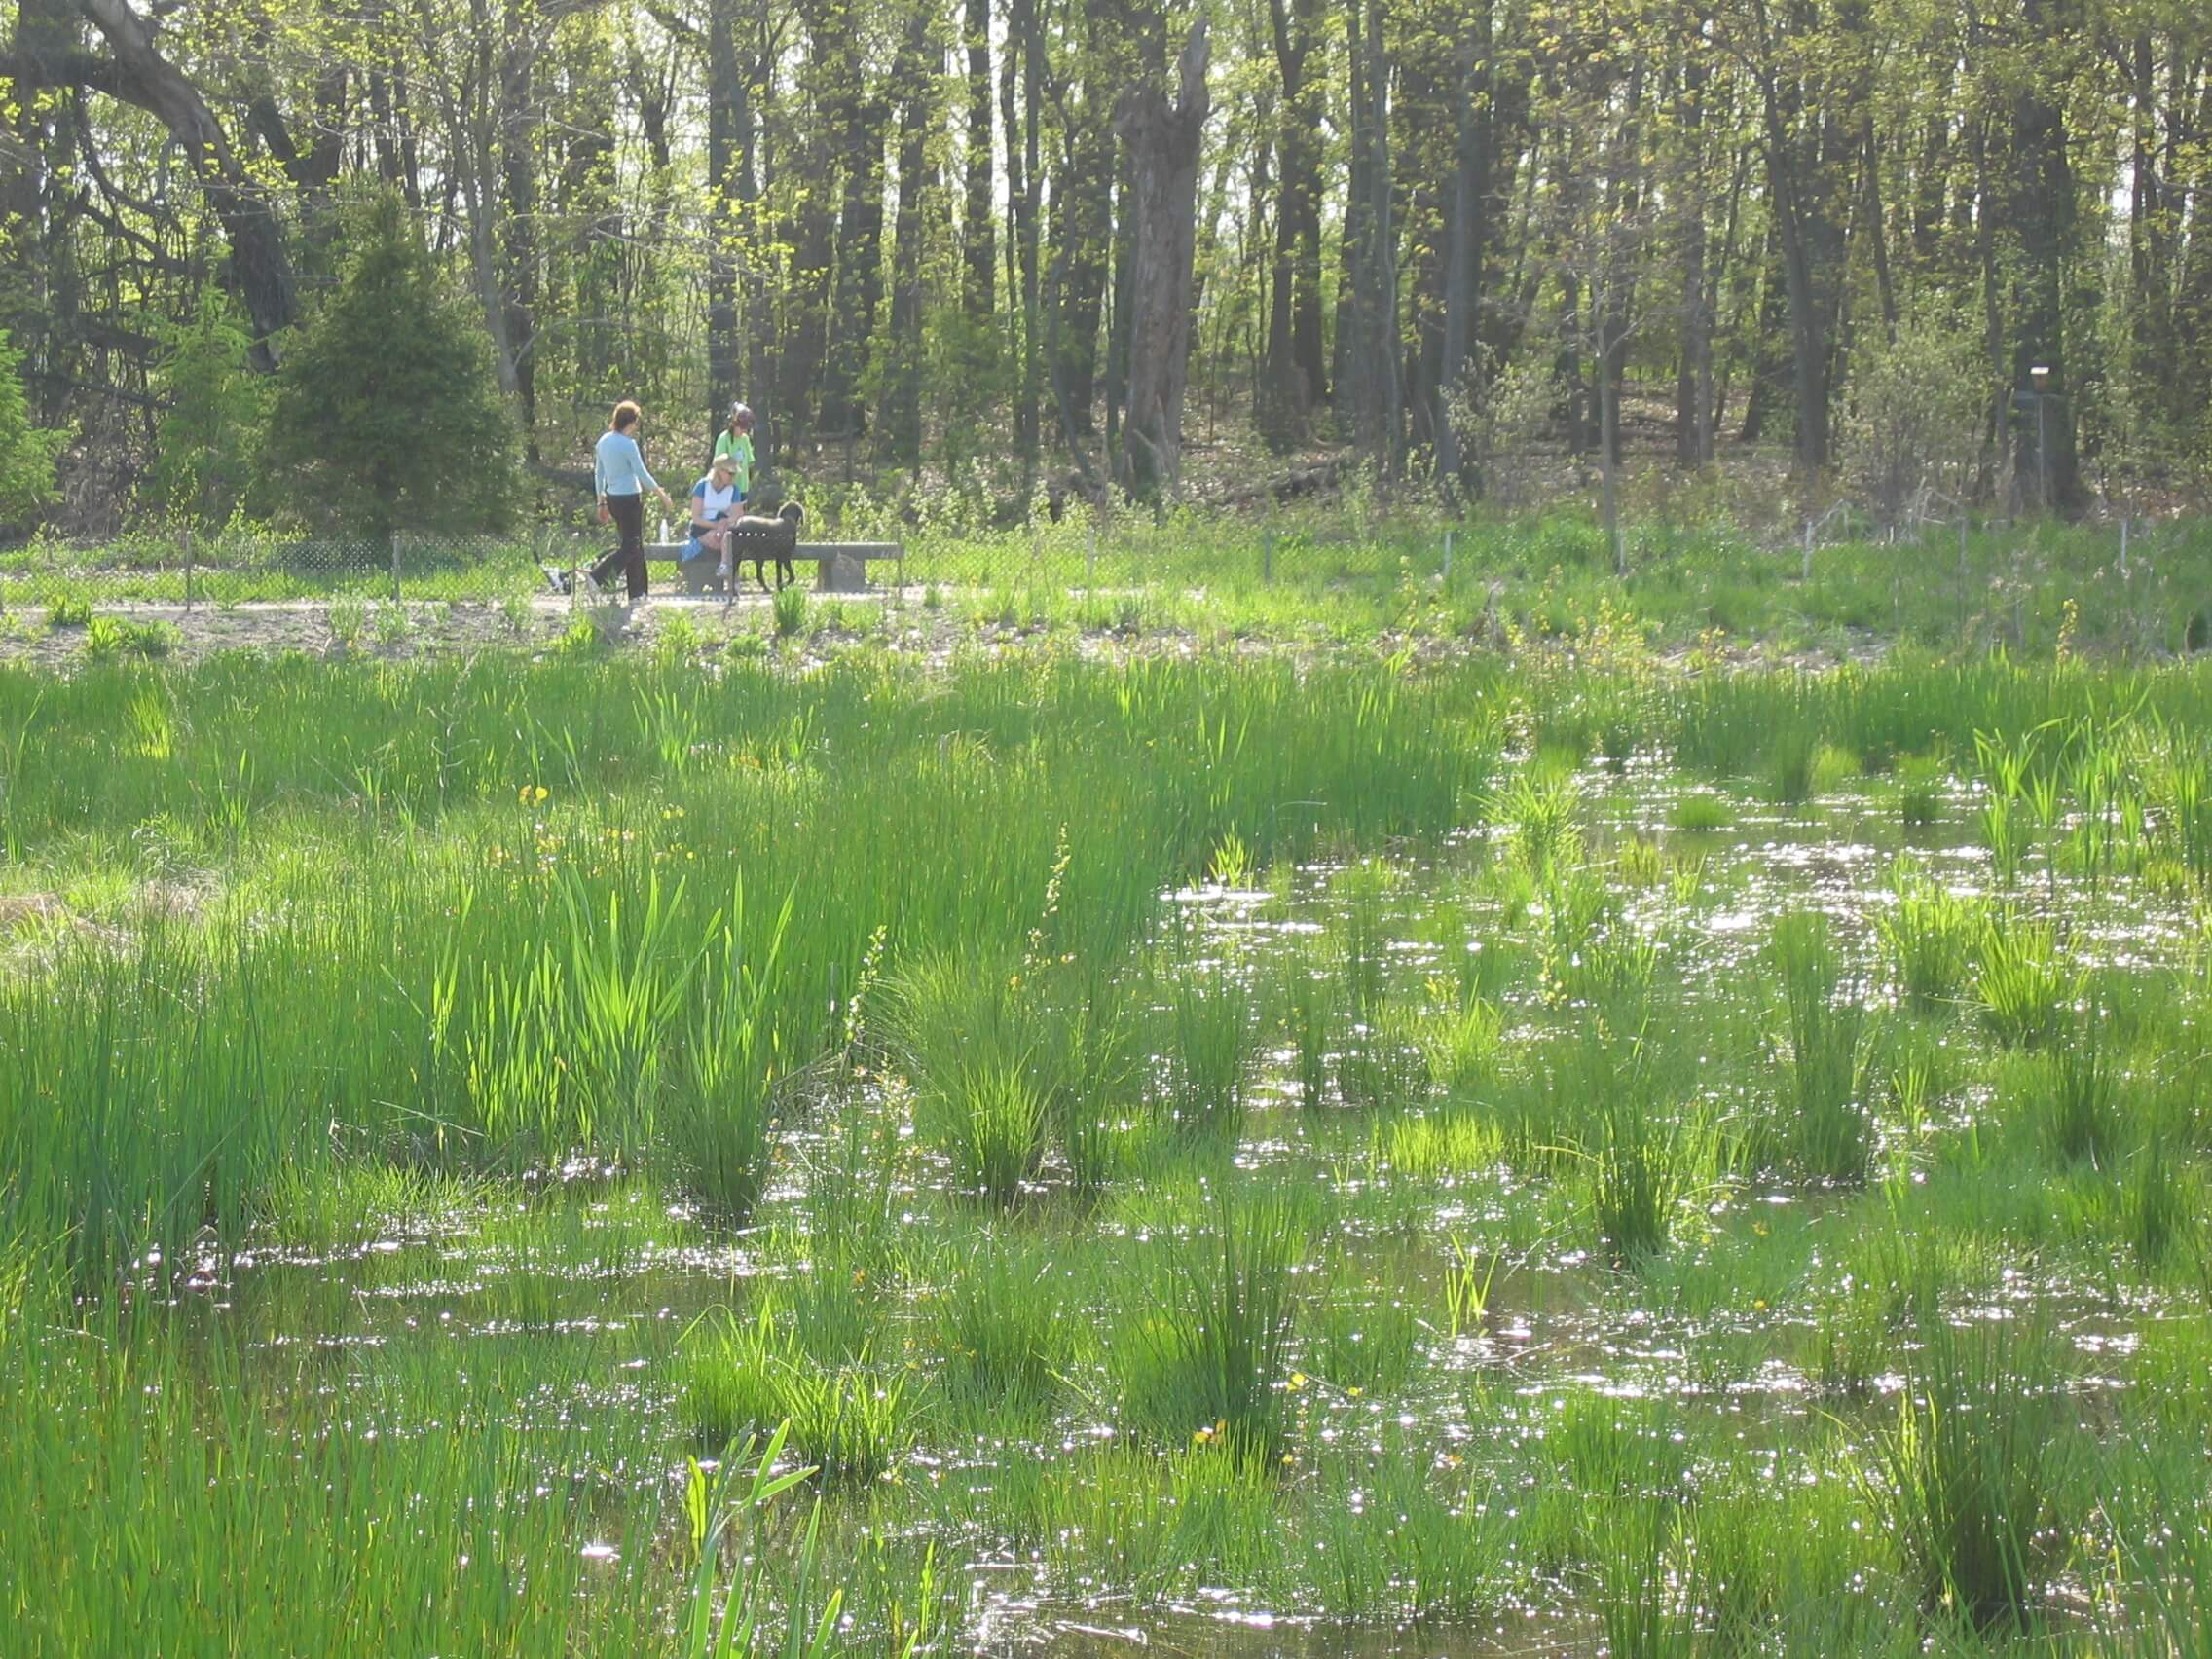 Constructed 4-acre wet meadow filters pollution from stormwater runoff before flow enters Fresh Pond Reservoir, restores wetland habitat, and provides recreational opportunities via encircling path with simple sitting areas.